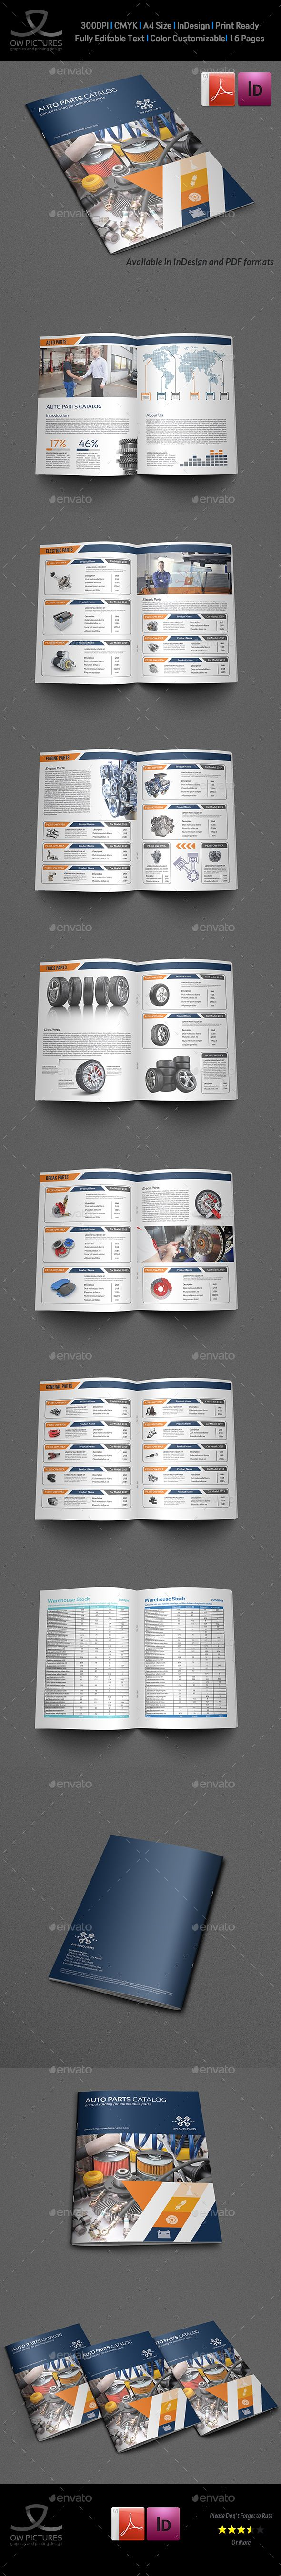 Auto Parts Catalog Brochure Template 	InDesign INDD. Download here: http://graphicriver.net/item/auto-parts-catalog-brochure-template-vol2/16037041?ref=ksioks